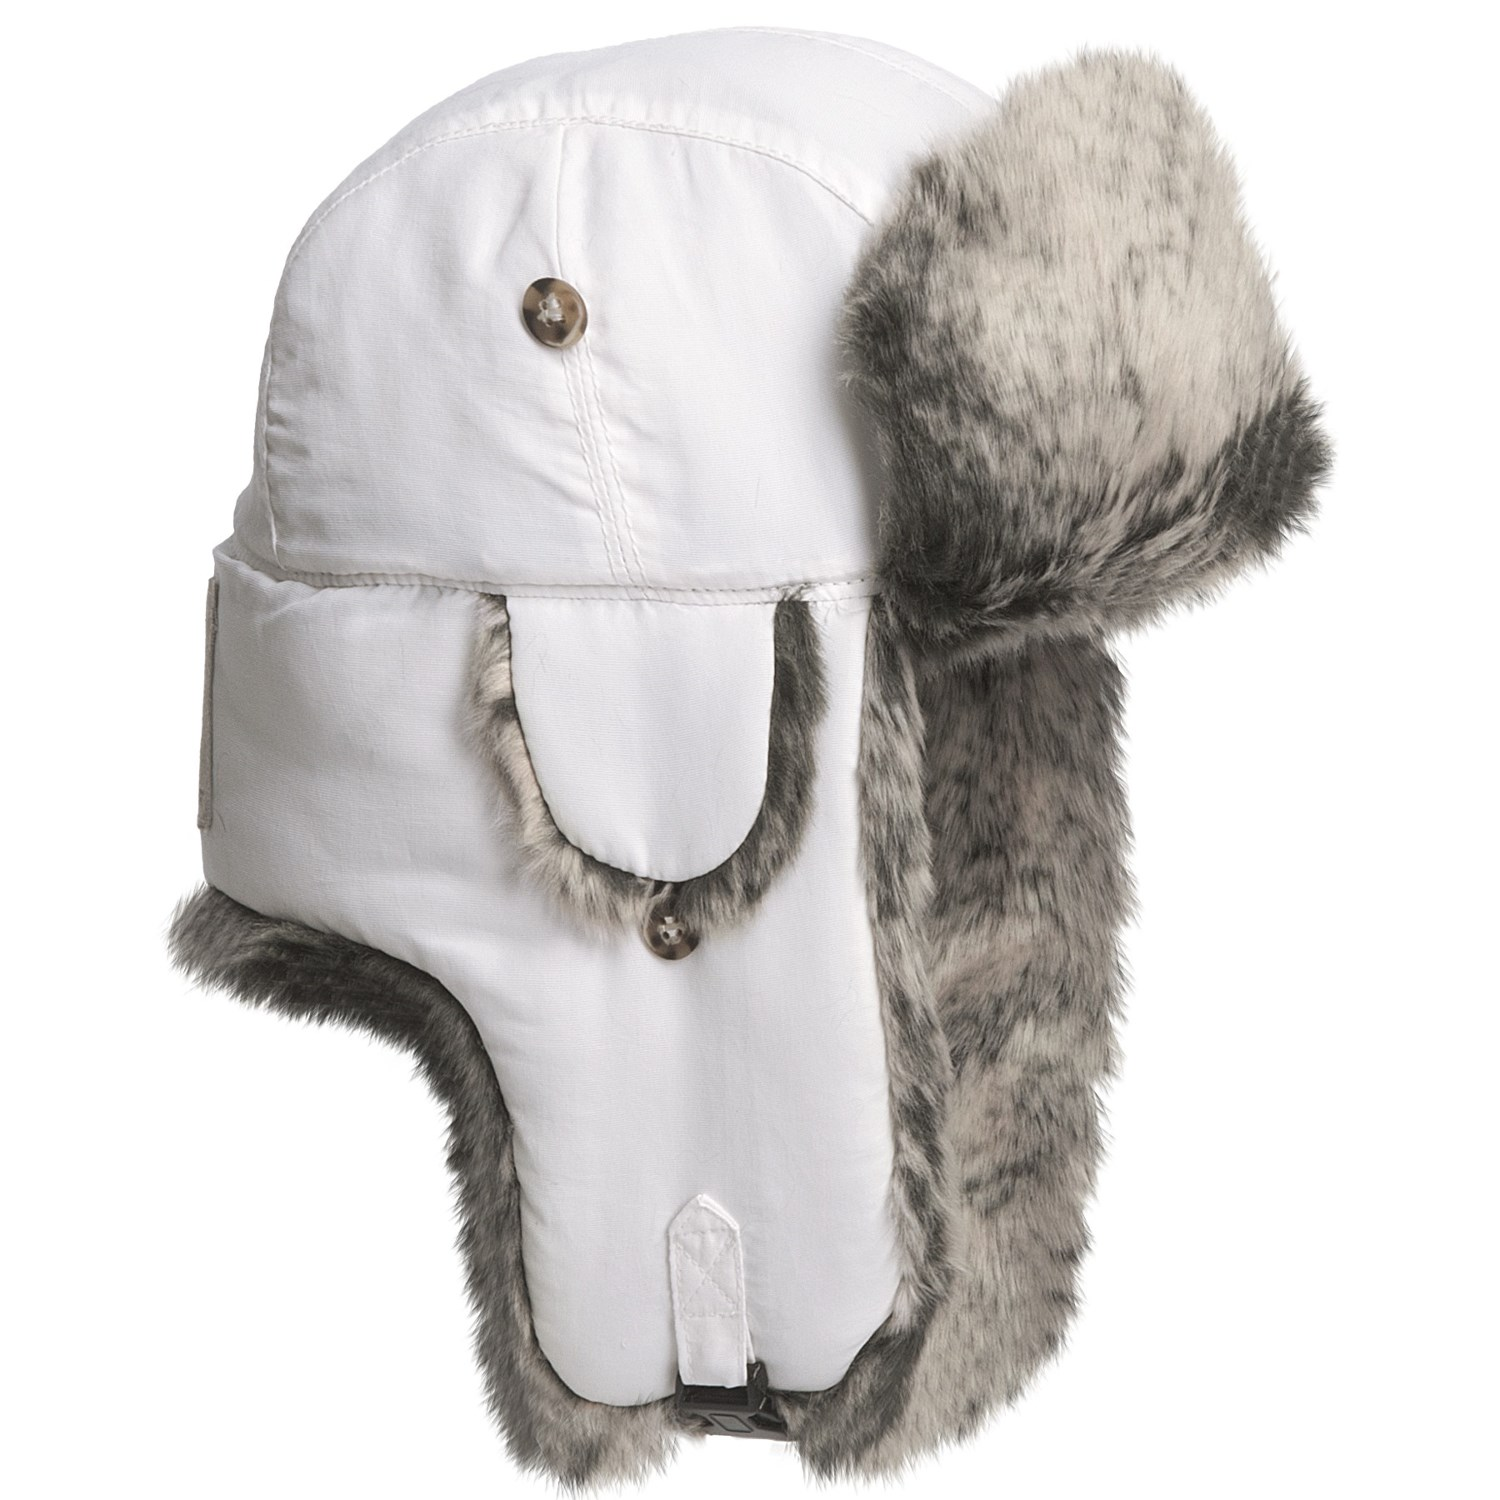 You searched for: women bomber hat! Etsy is the home to thousands of handmade, vintage, and one-of-a-kind products and gifts related to your search. No matter what you're looking for or where you are in the world, our global marketplace of sellers can help you .